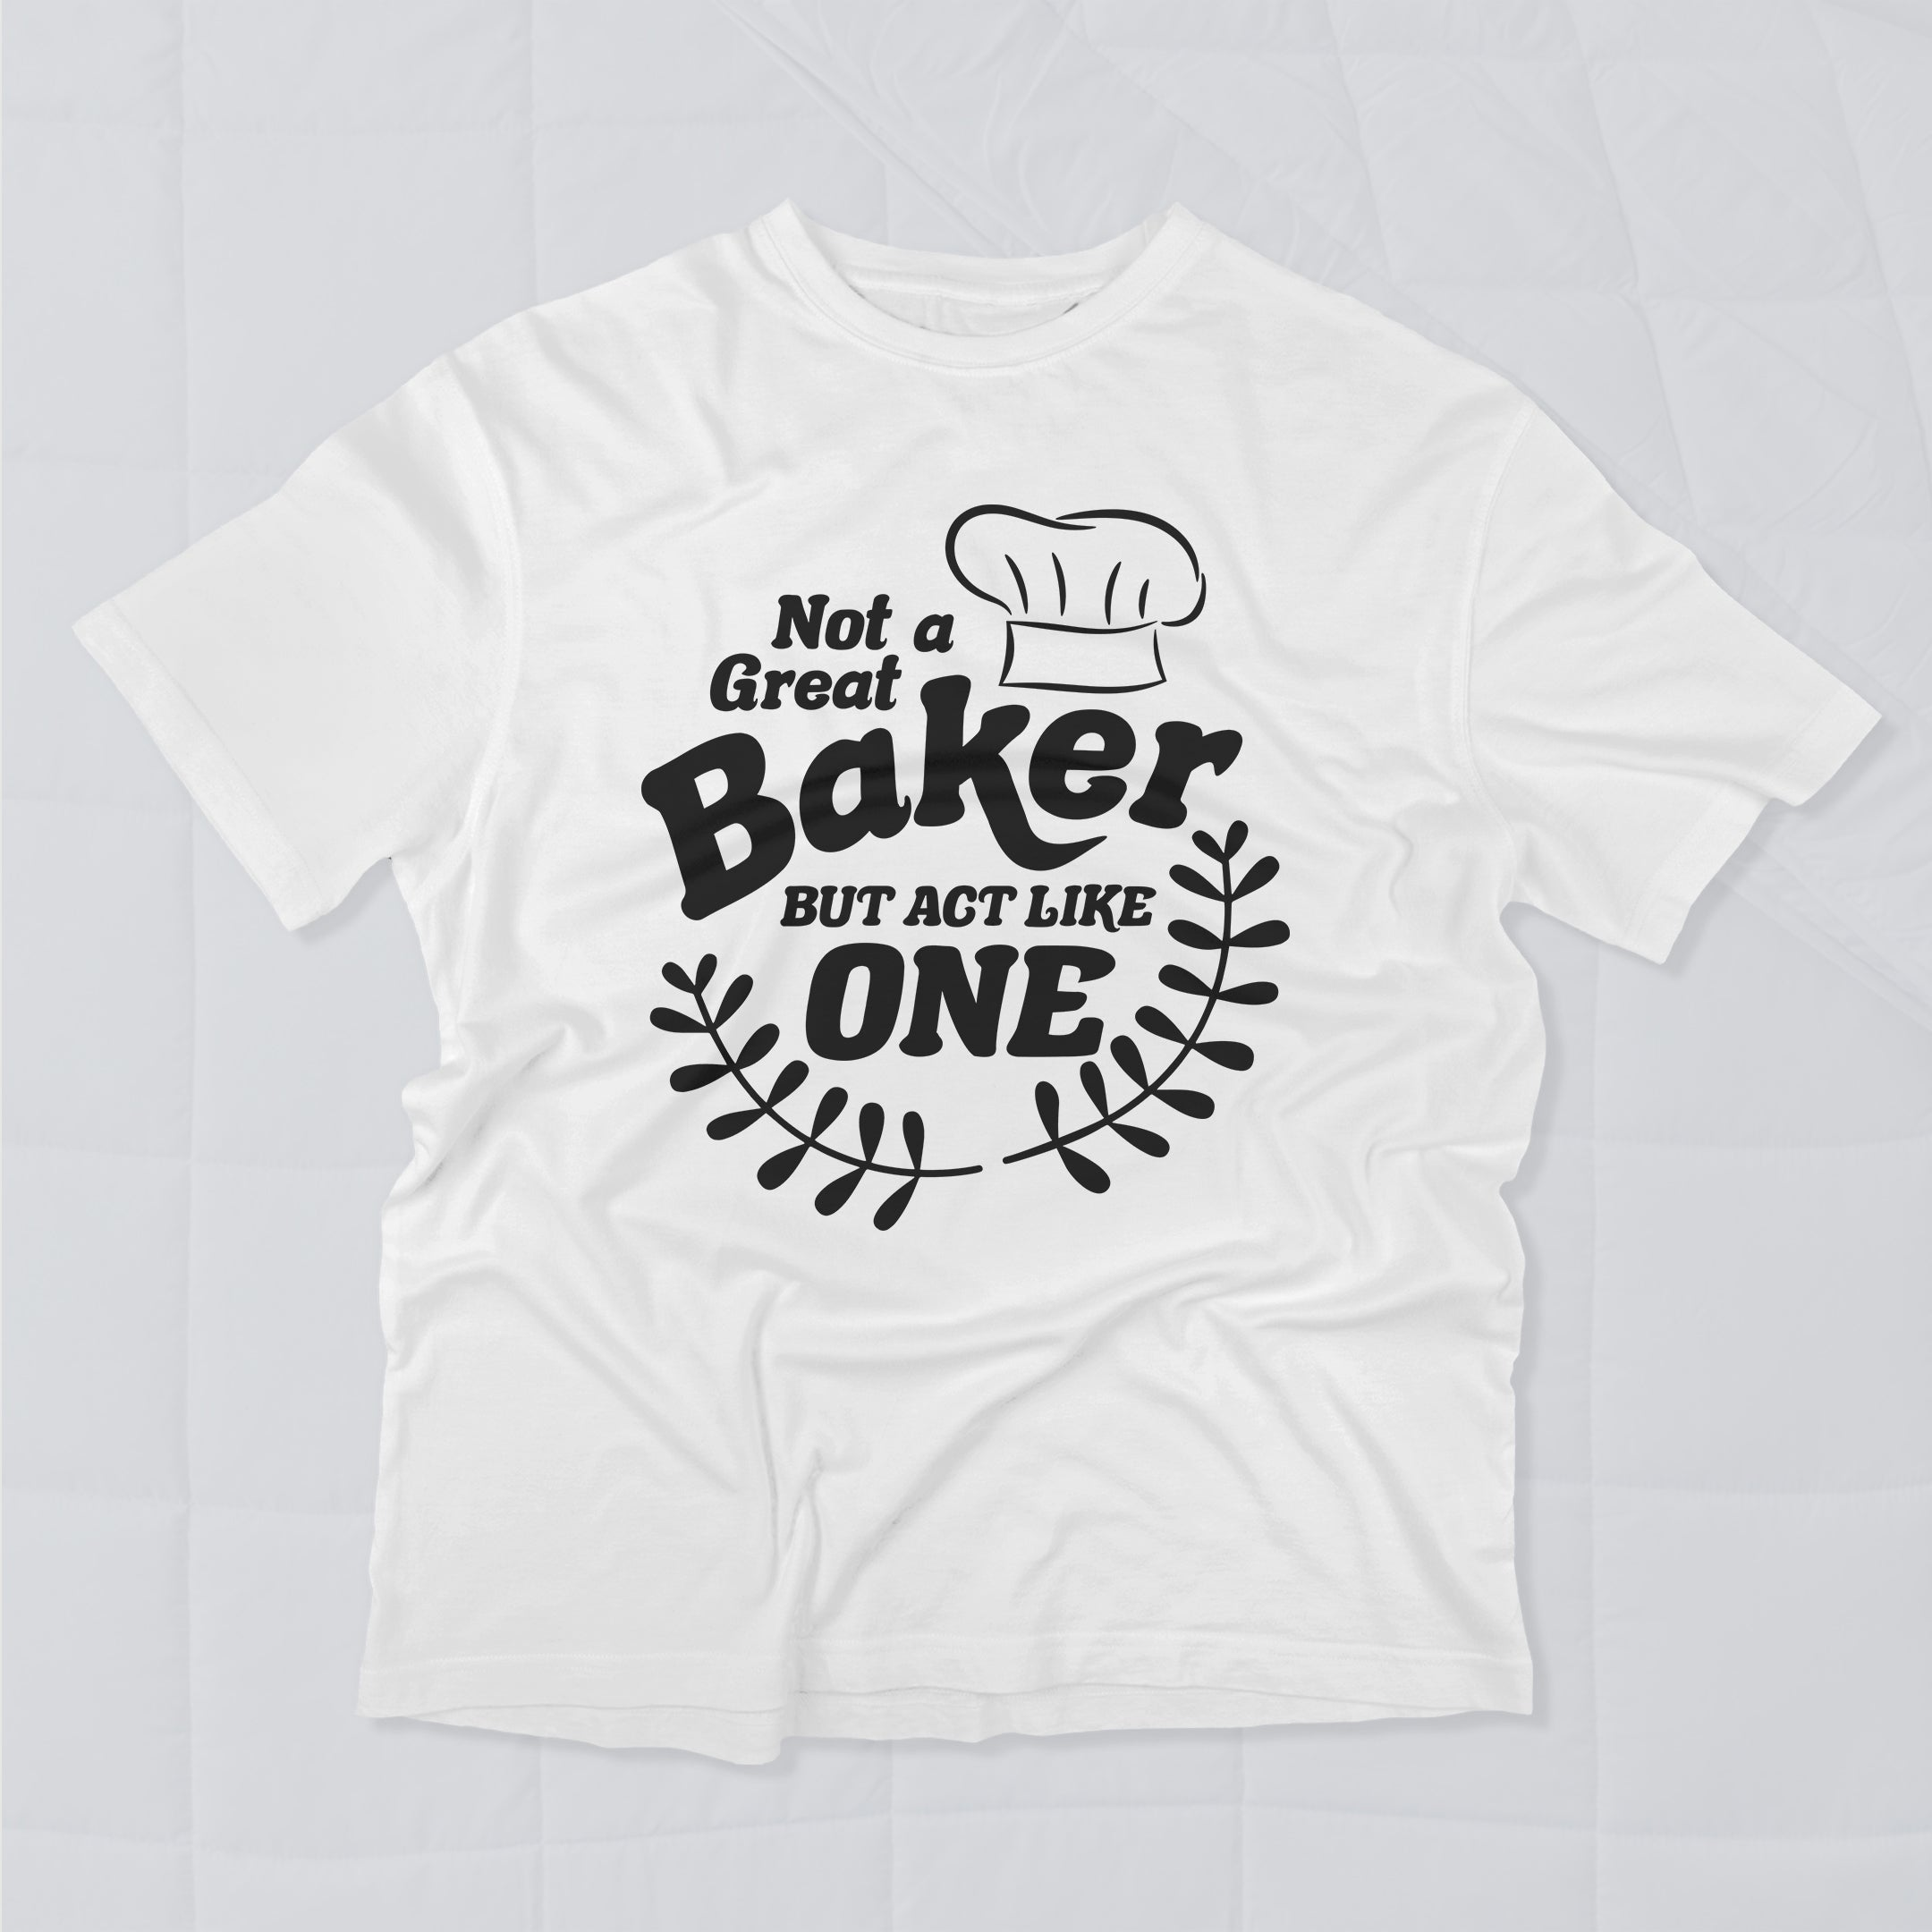 Act Like a Baker